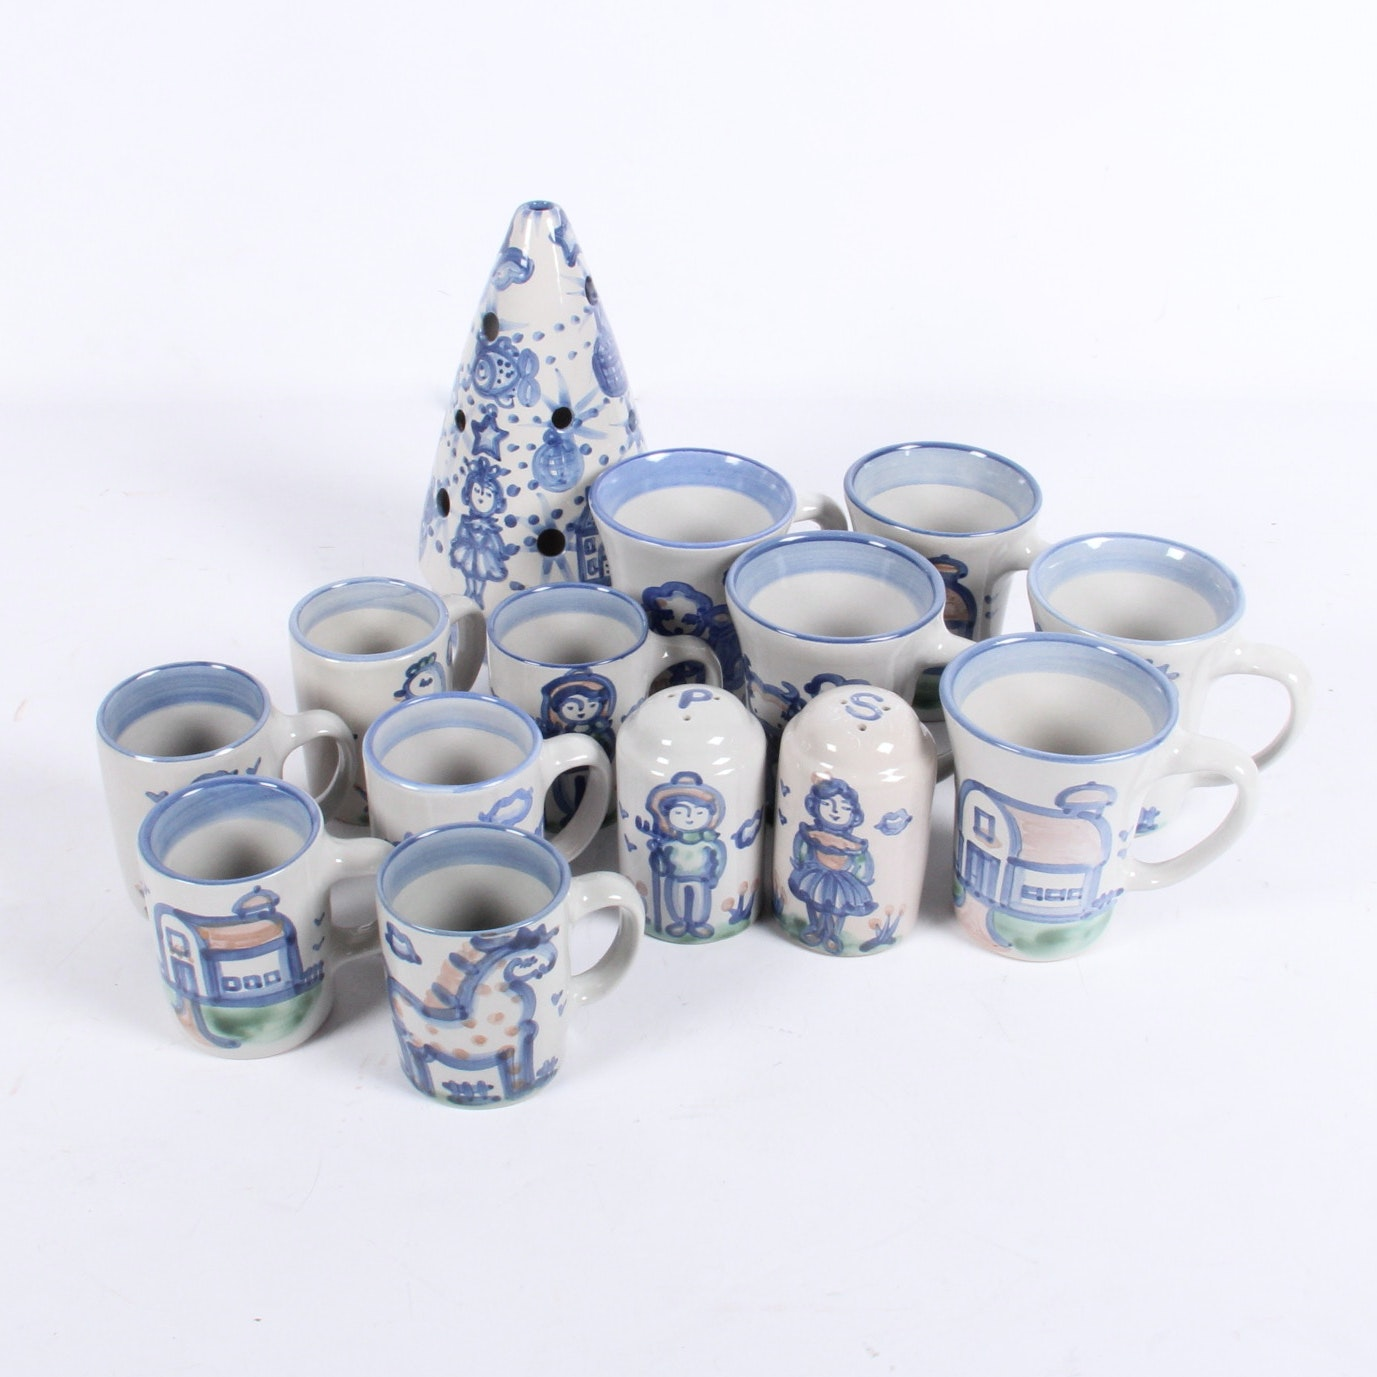 M. A. Haddley Pottery Collection